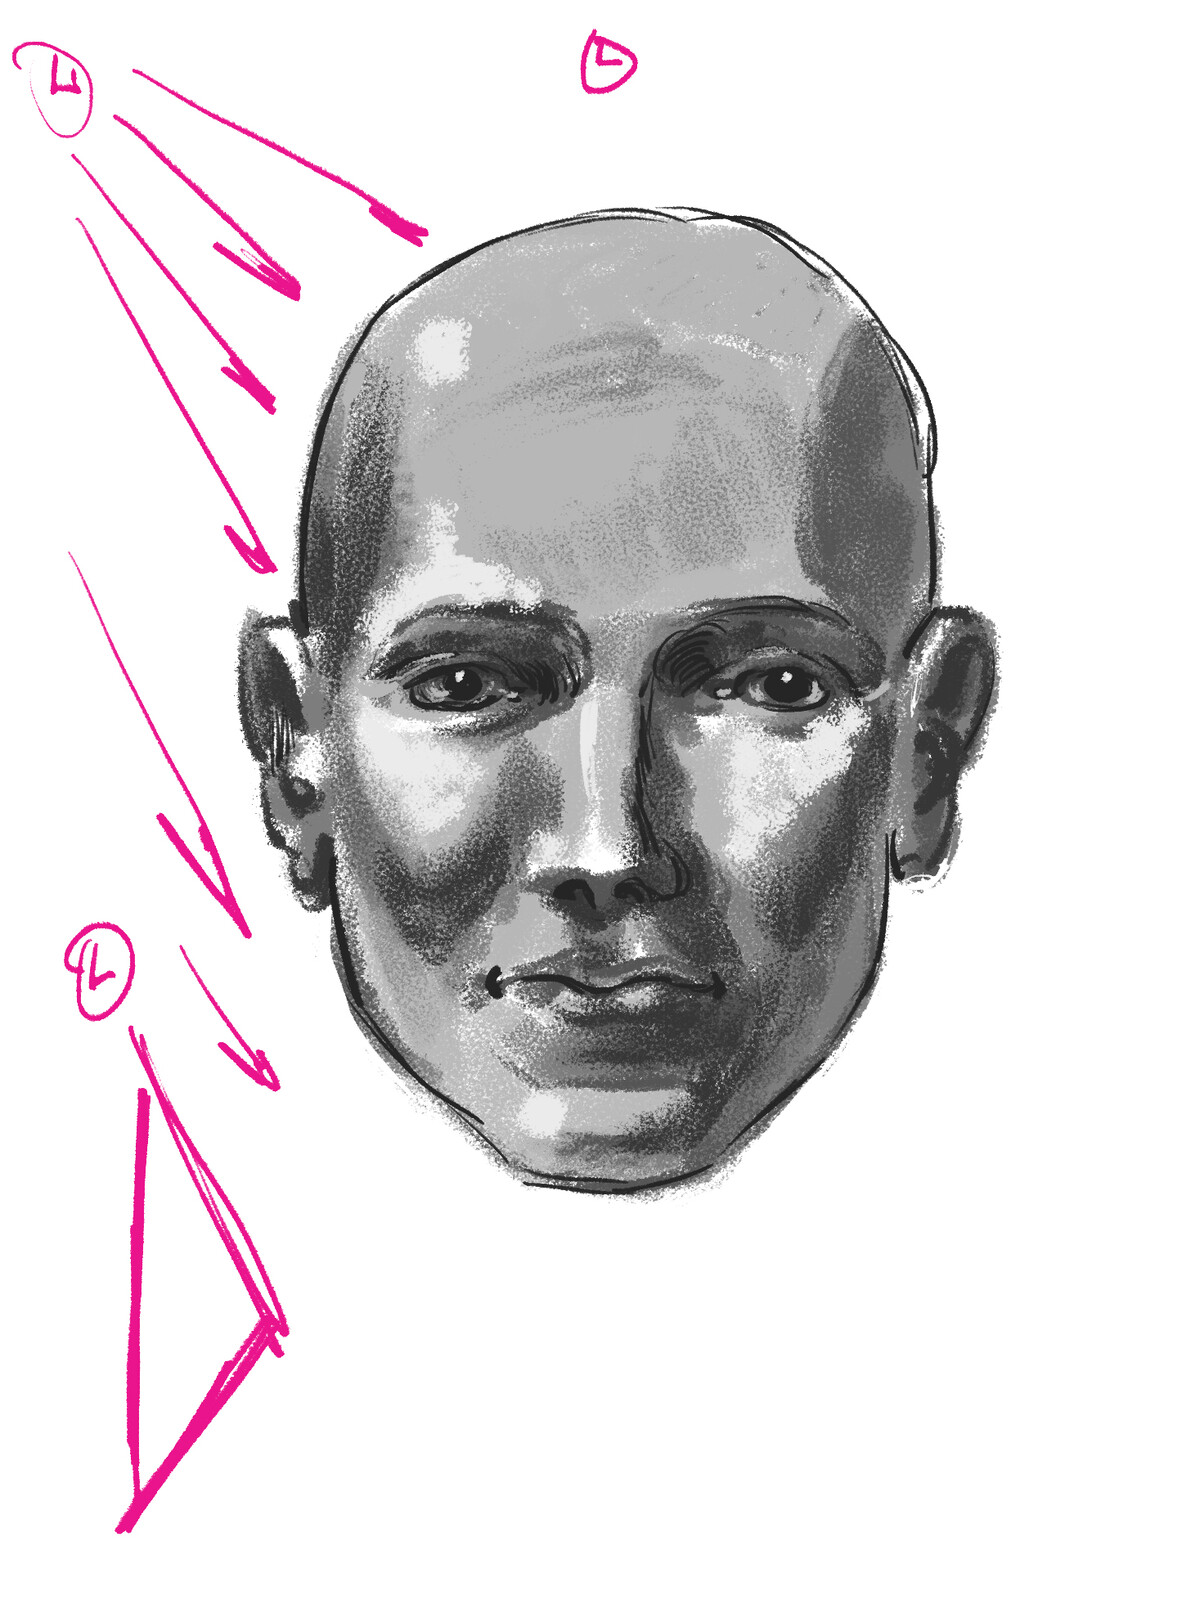 Project 8: Repeat project 7 and apply 3D values to the male and female heads. Use one light source.